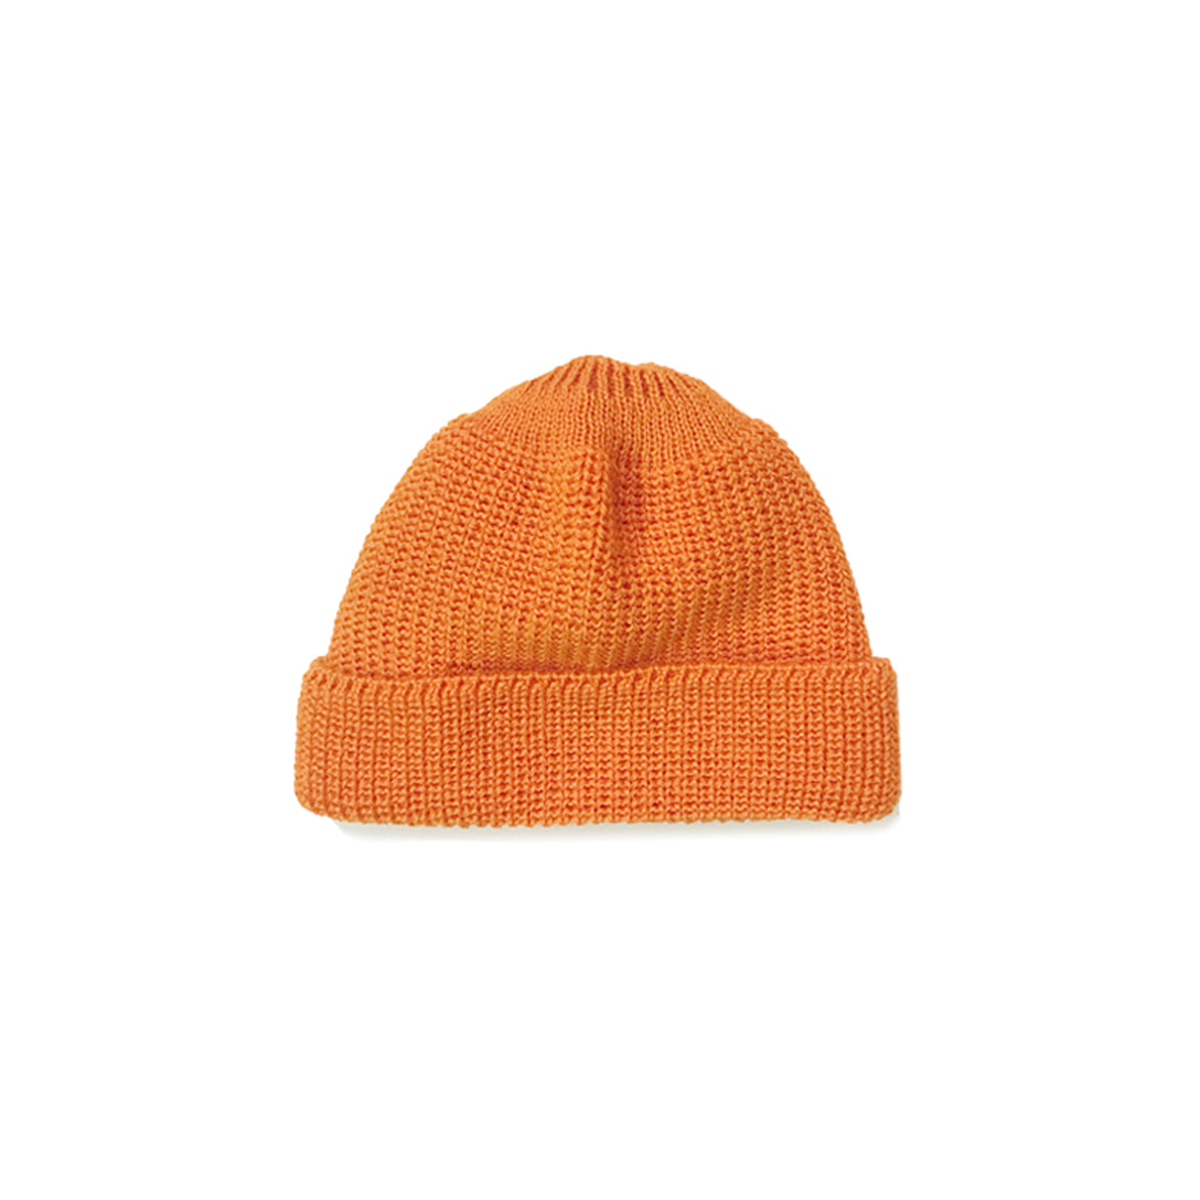 [LEUCHTFEUER STRICKWAREN] WALFANGER 'ORANGE'